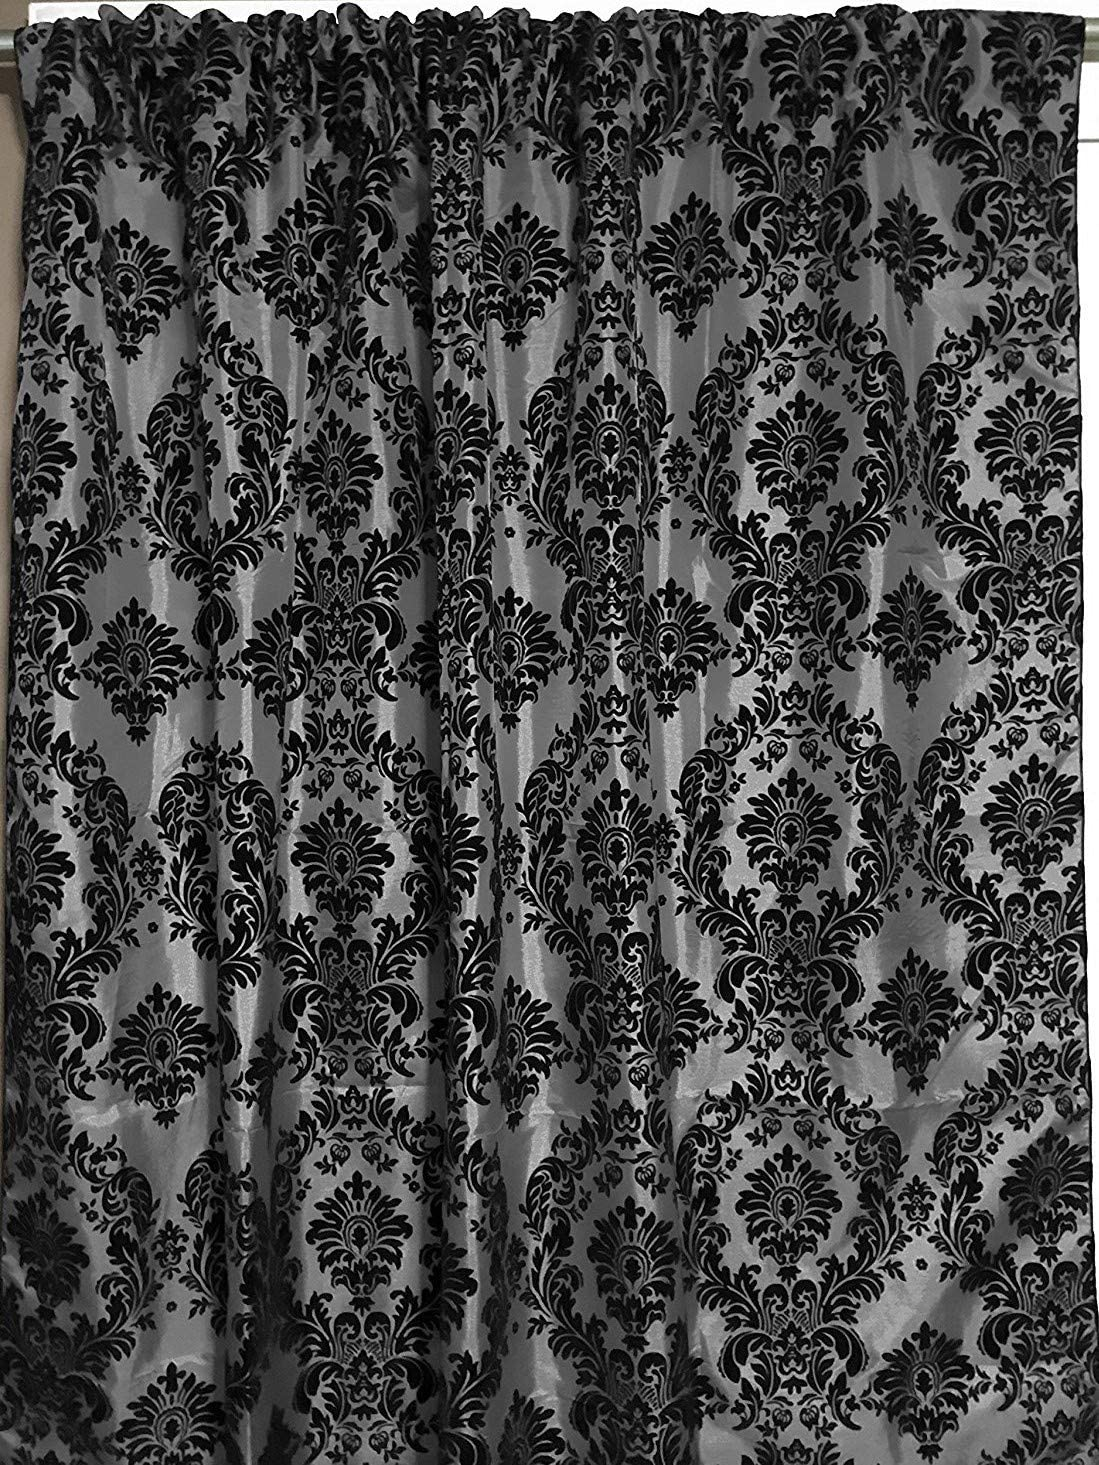 lovemyfabric Taffeta Flocking Damask Print Window Curtain Panel/Stage Backdrop/Photography Backdrop-Black on Silver 2